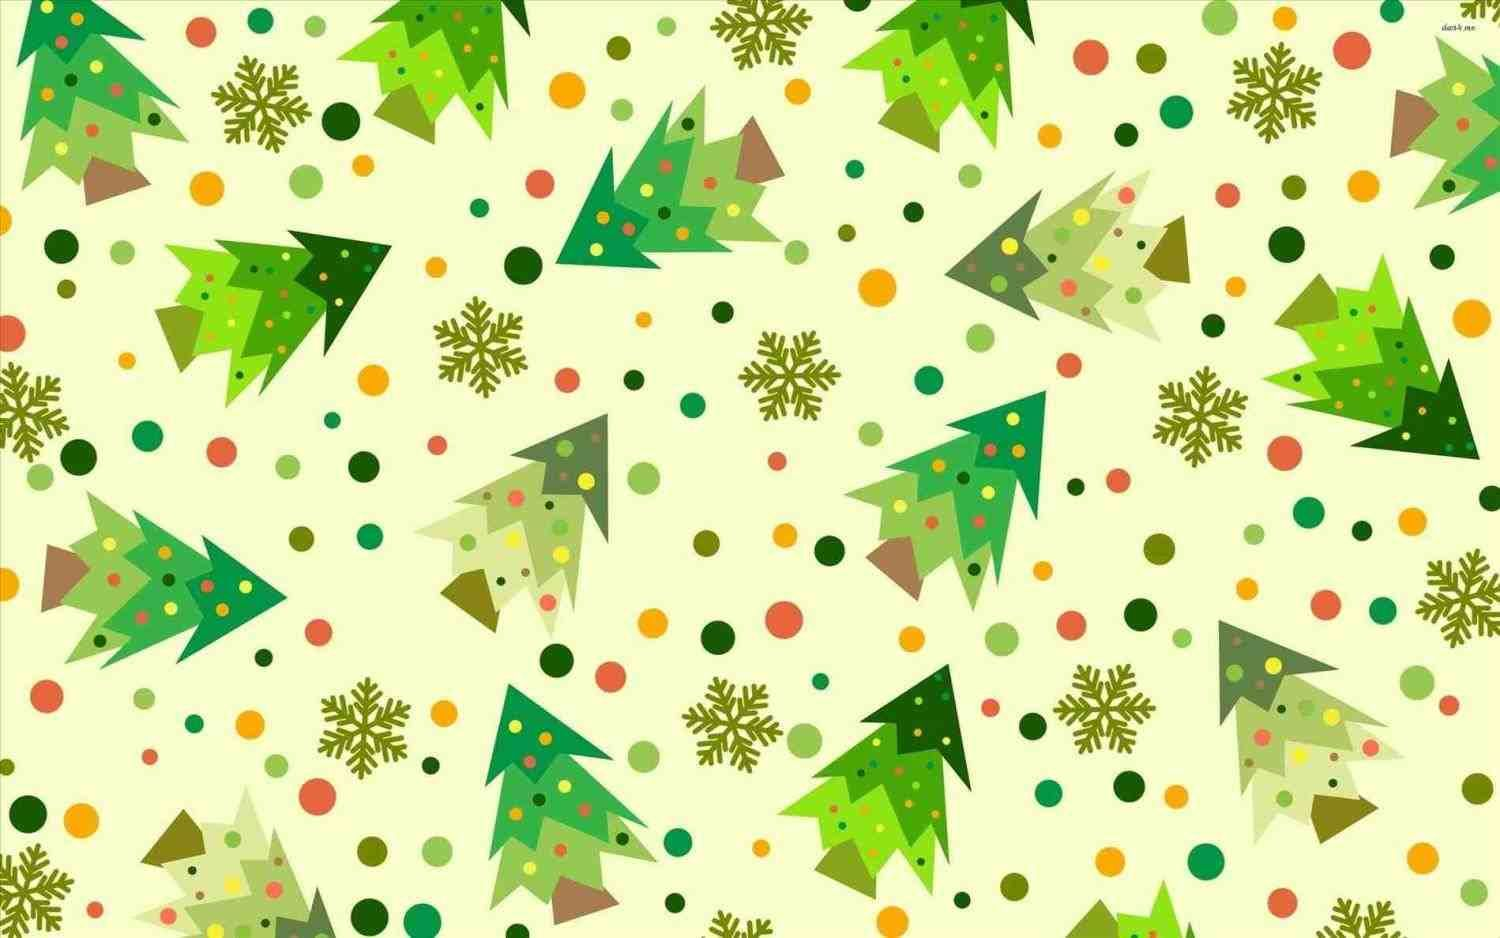 New Post christmas sweater pattern background tumblr xmast